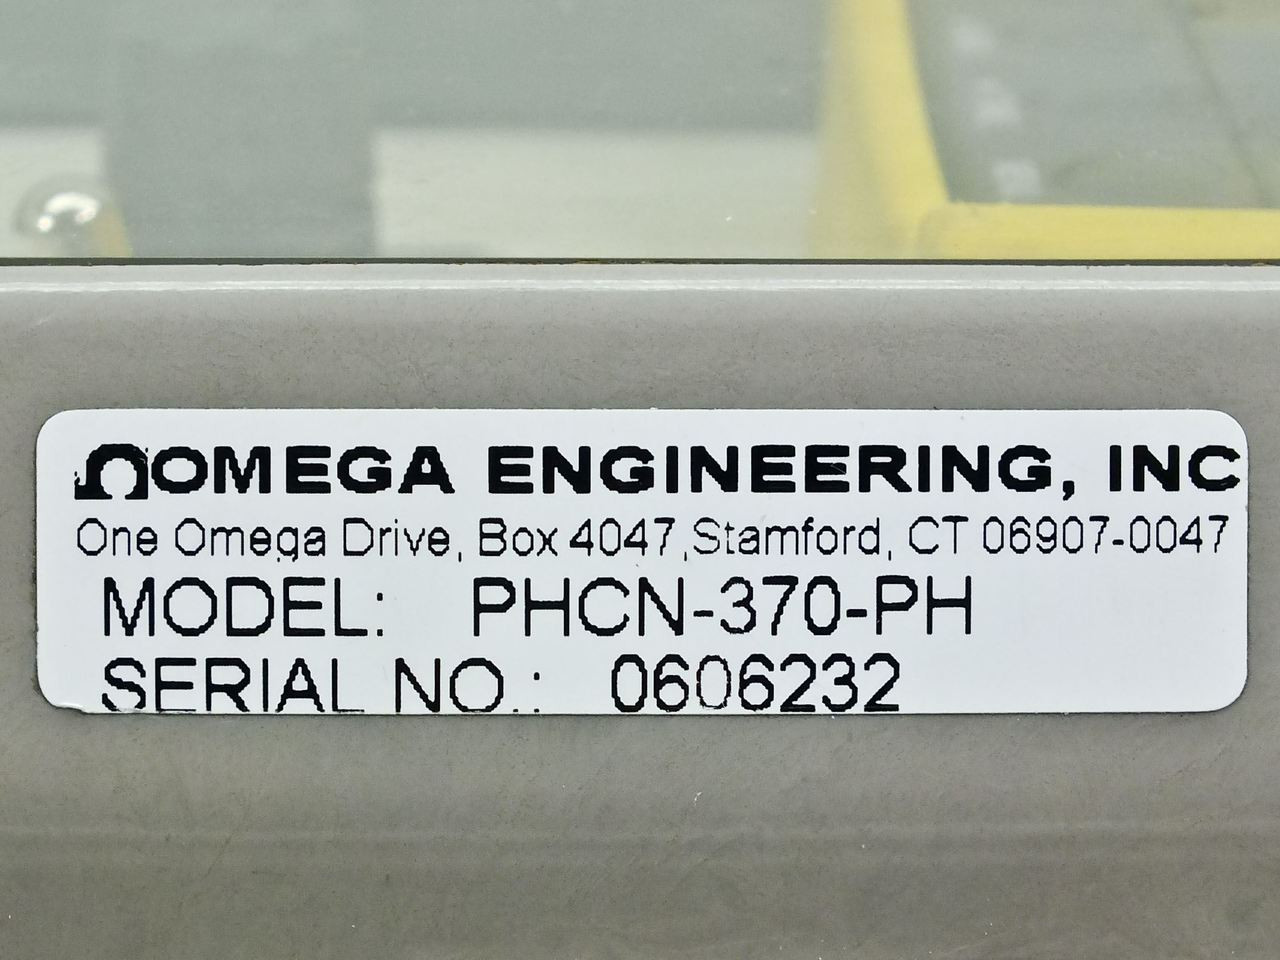 Omega Engineering Phcn 370 Ph Industrial Wall Mount